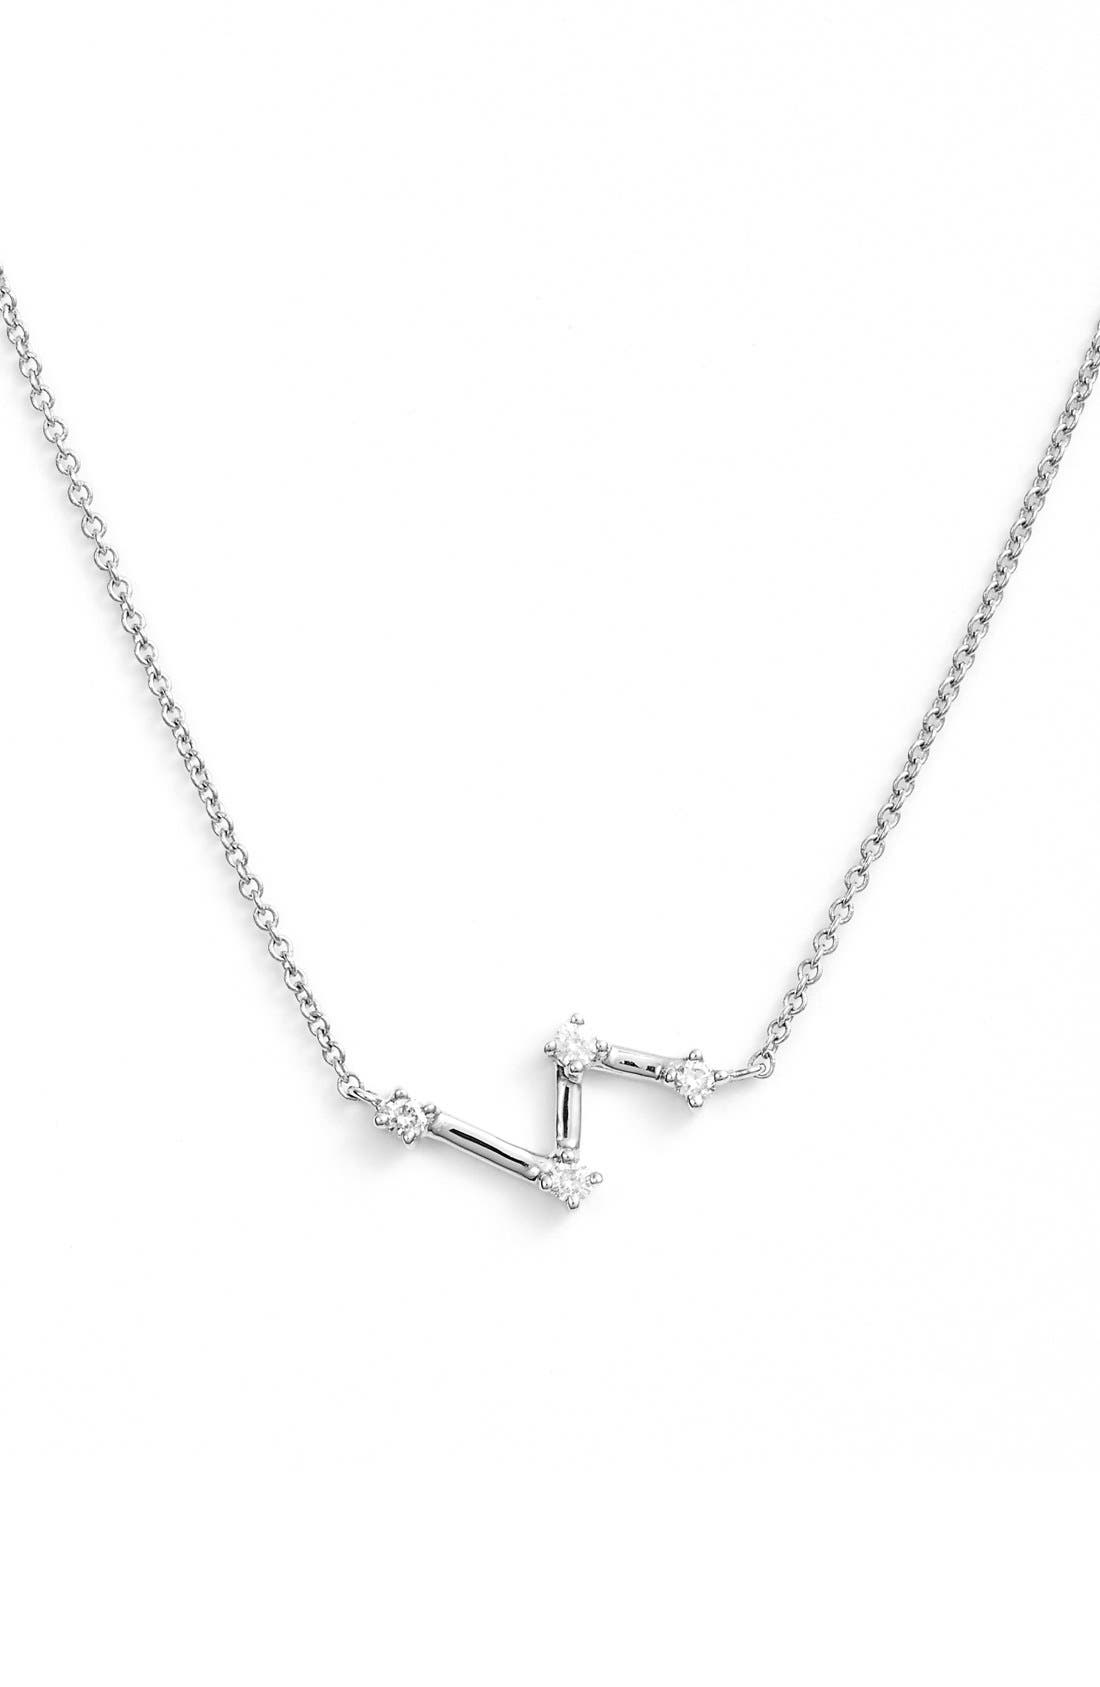 Dana Rebecca Designs 'Jemma Morgan Zig Zag' Diamond Pendant Necklace